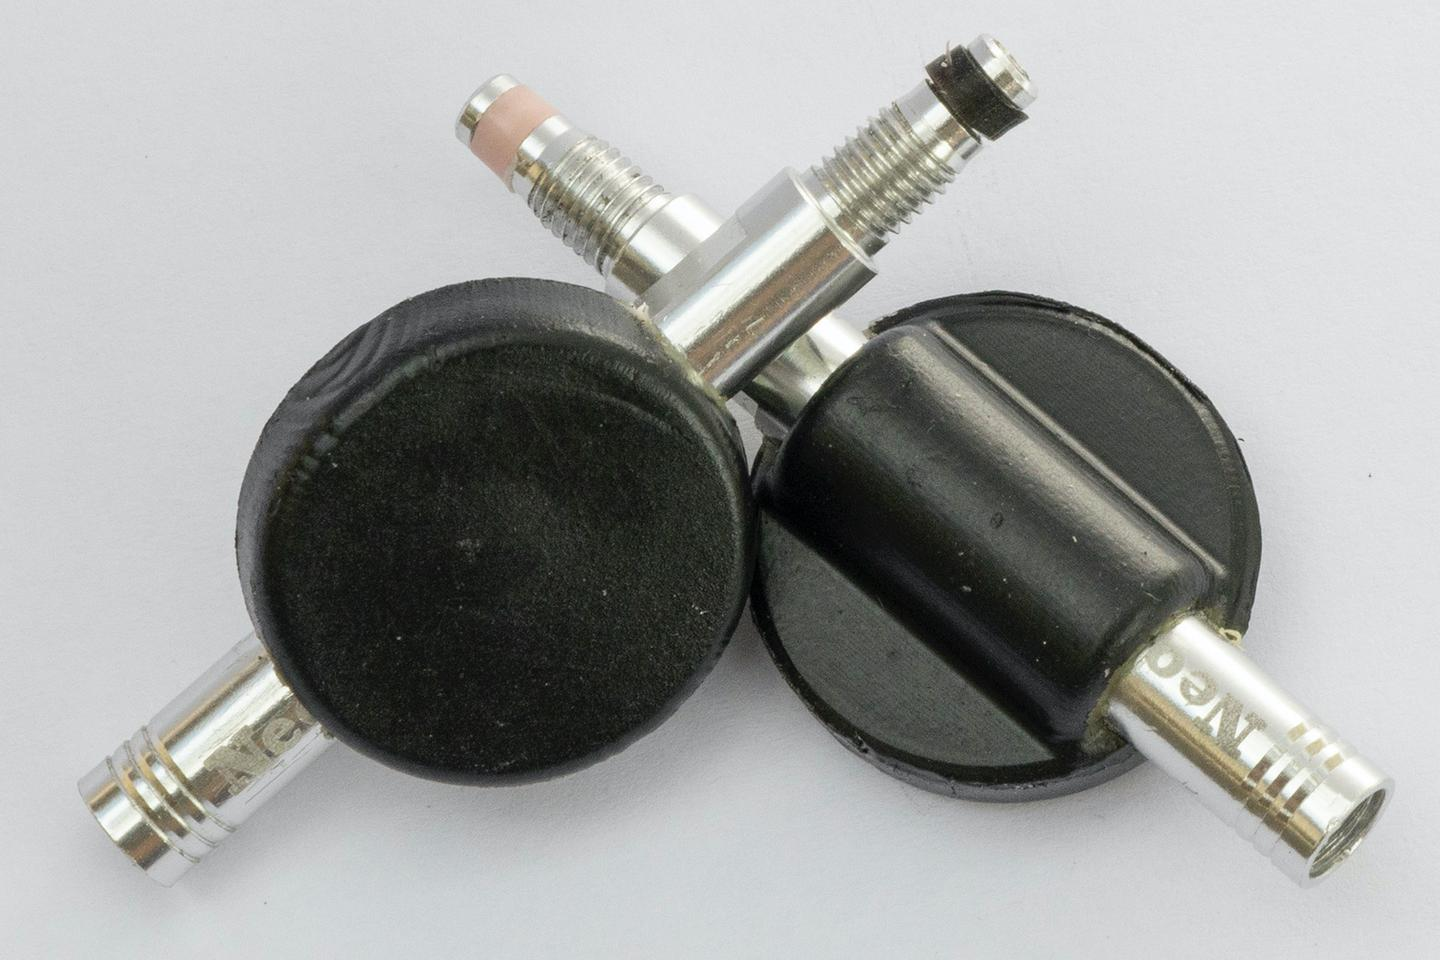 Each PSIcle sensor weighs a claimed 5 grams